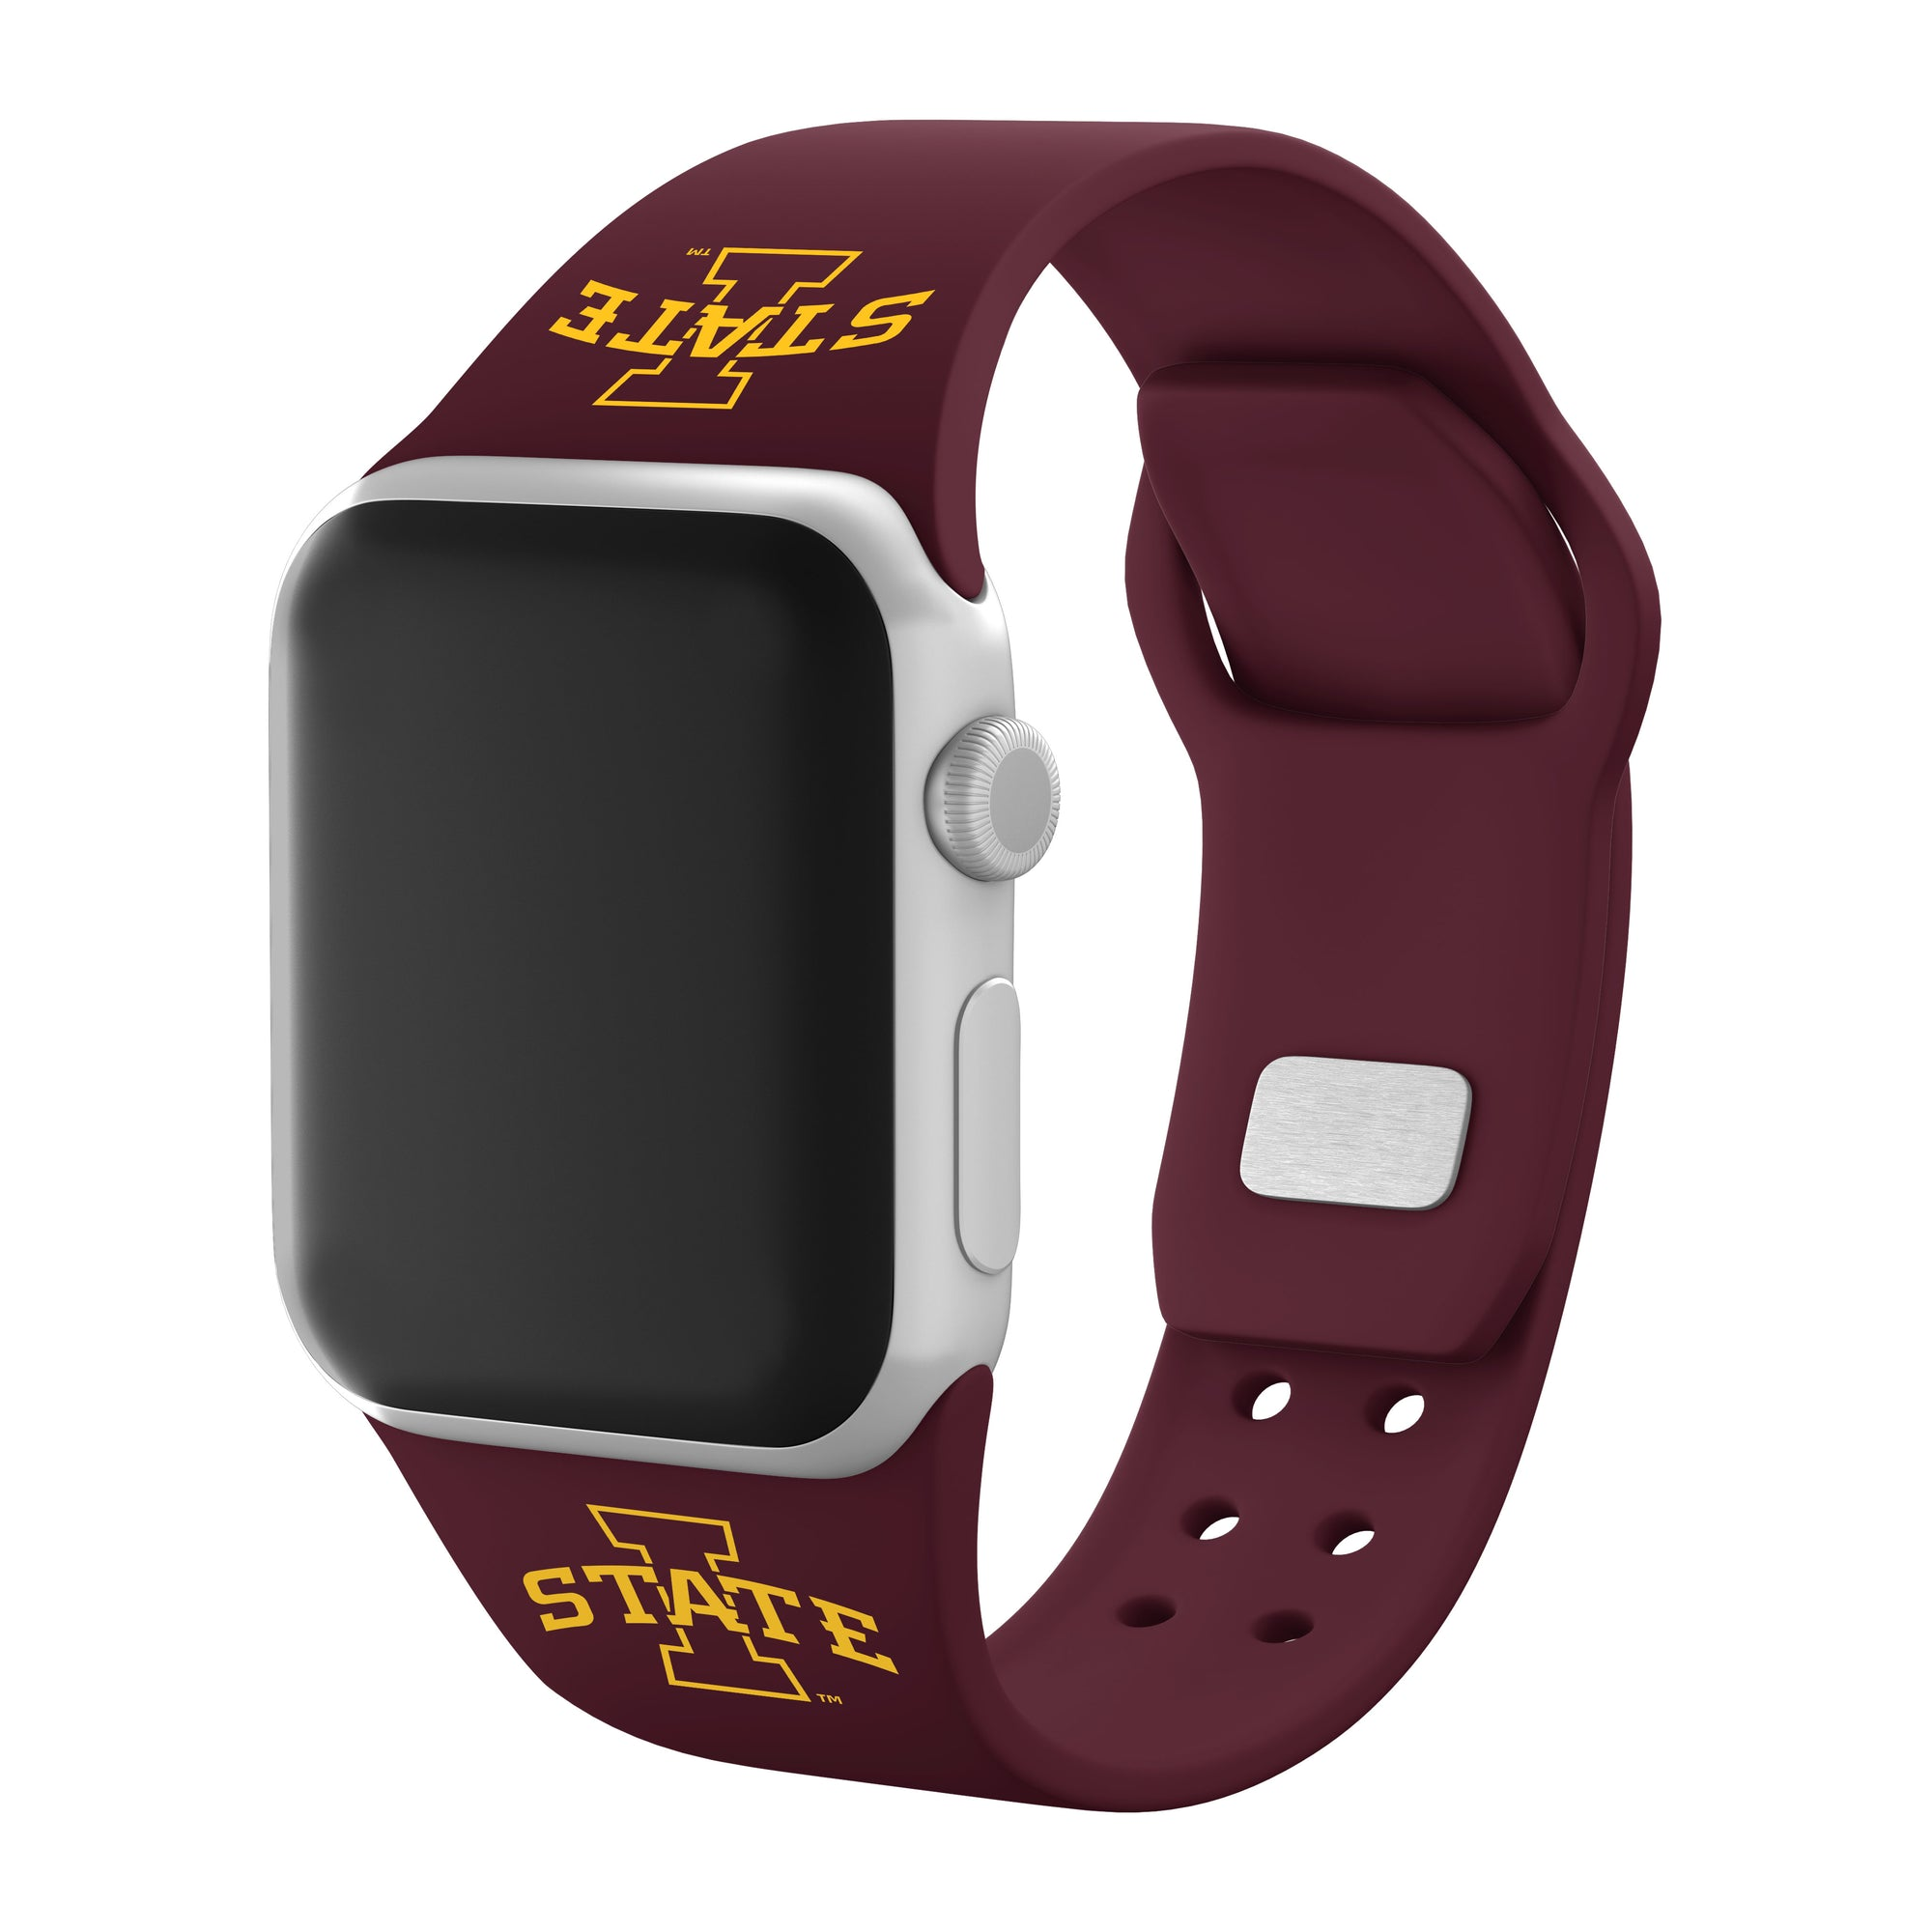 Iowa State Cyclones Apple Watch Band - Affinity Bands